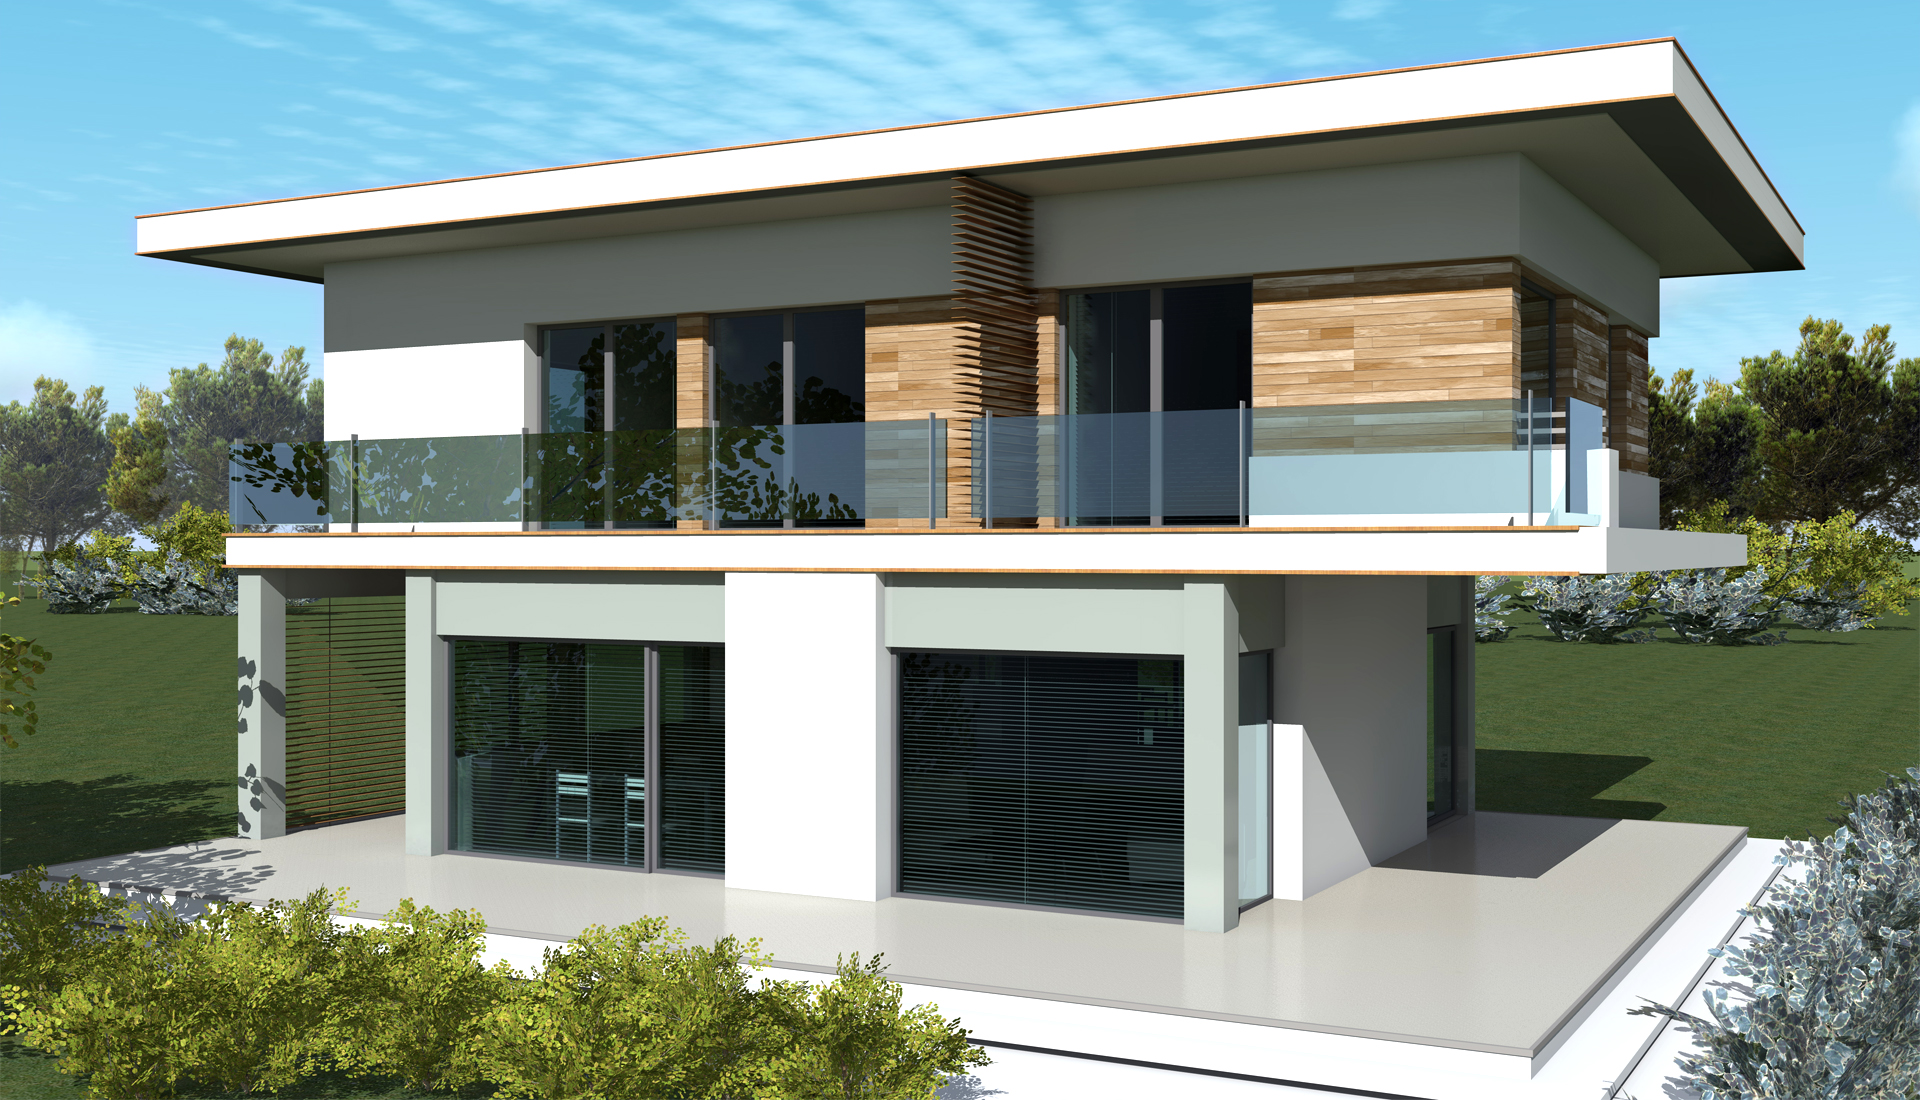 Plan maison contemporaine is 10 150m2 for Plan contemporaine maison